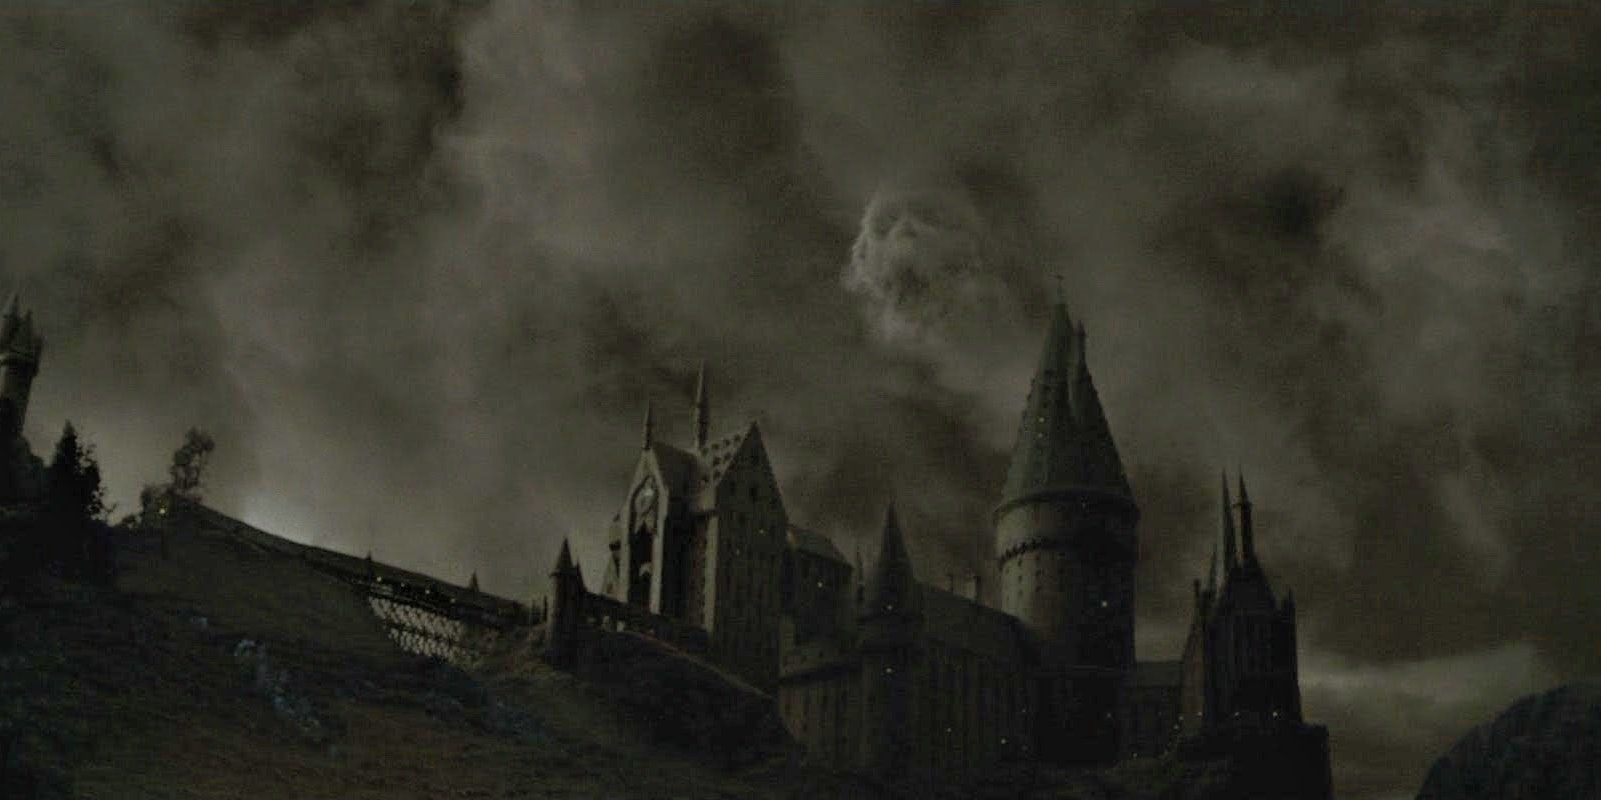 The Dark Mark over Hogwarts symbolized the success of the Death Eaters' coup.